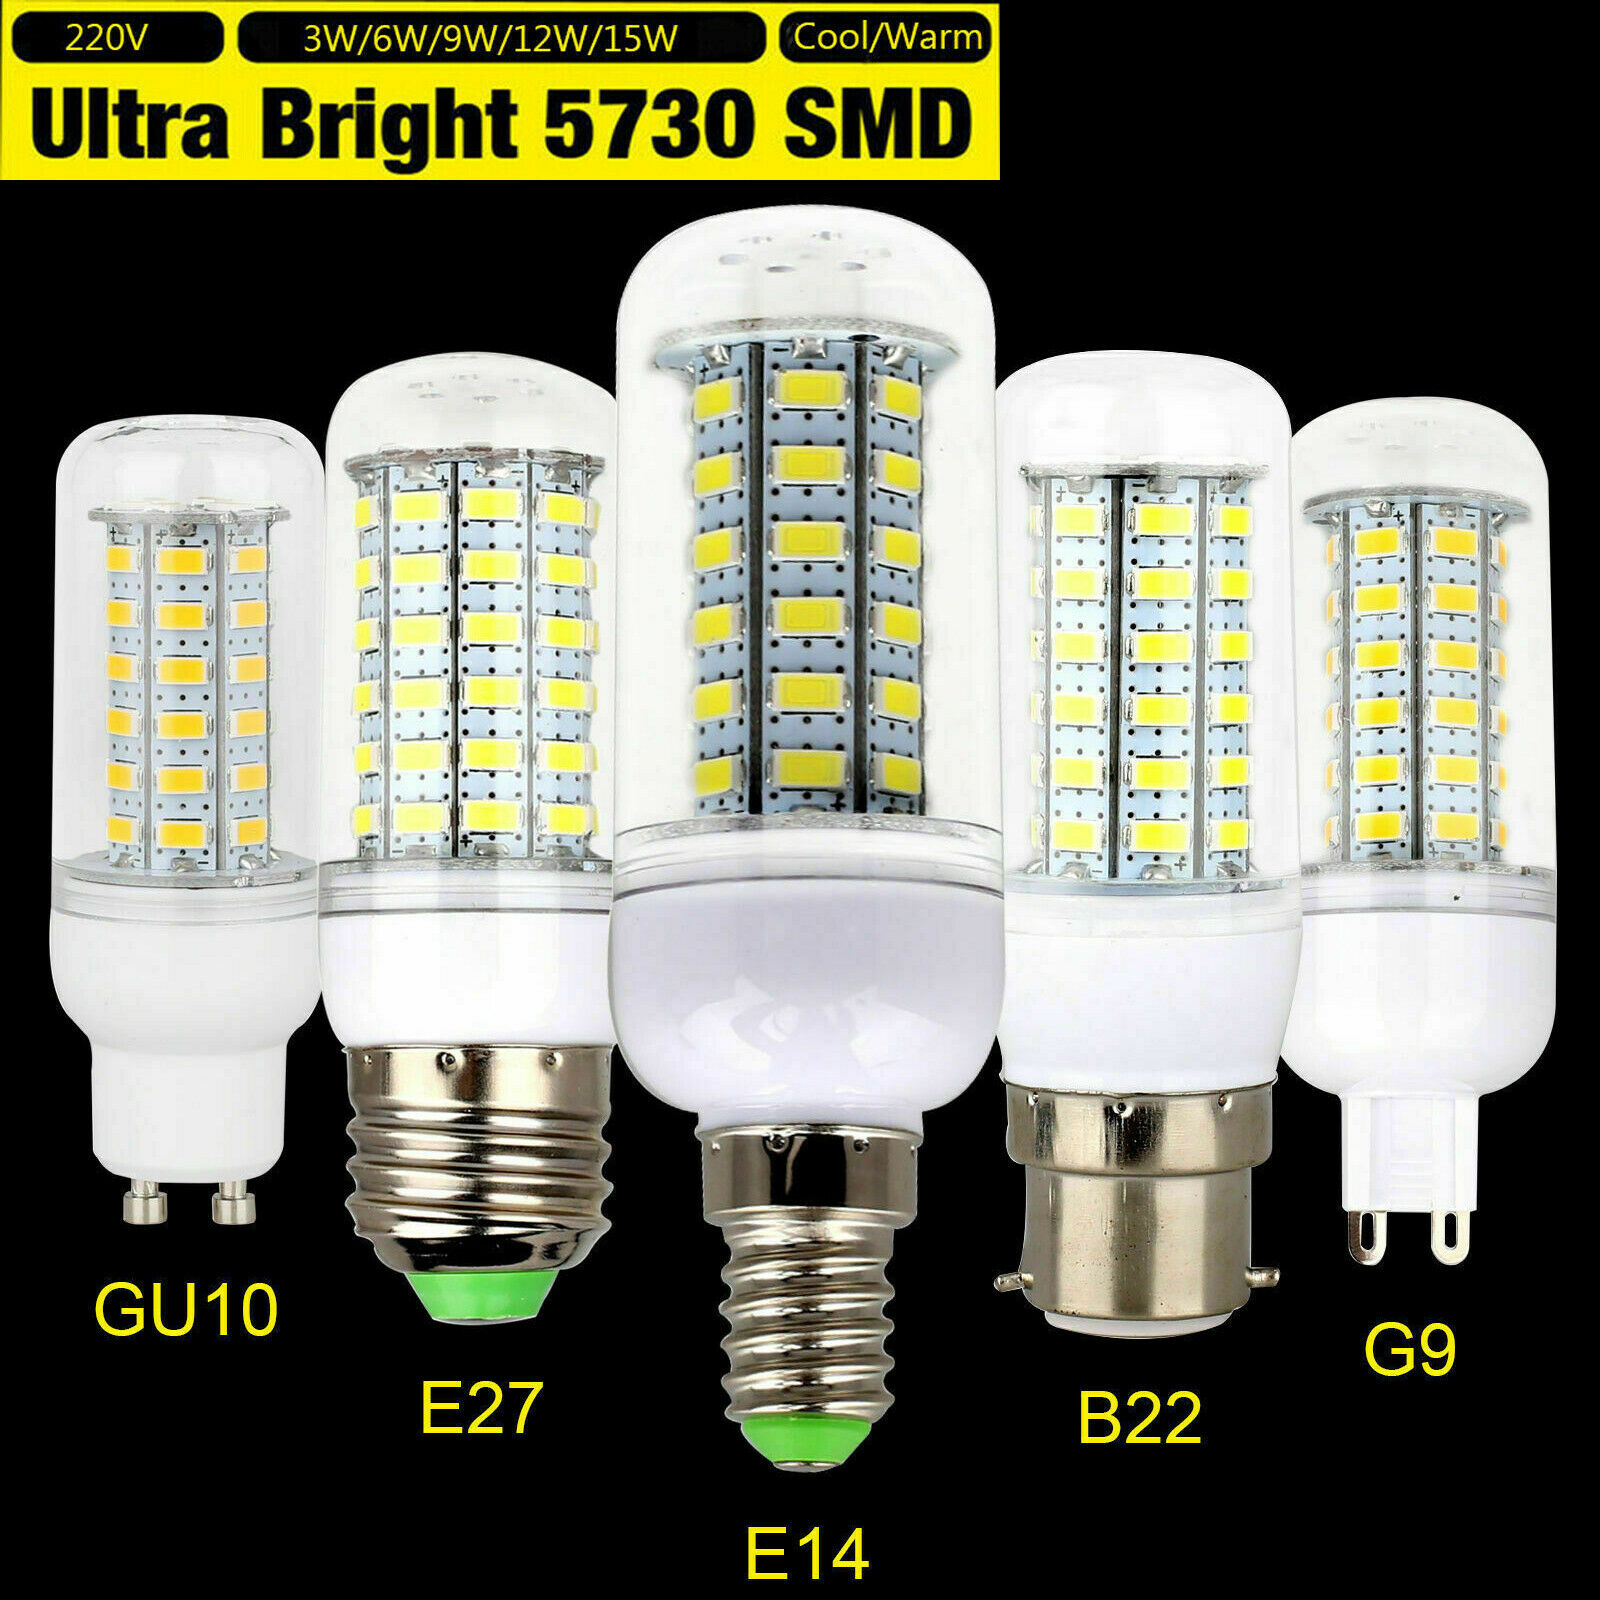 3W 6W 9W 12W 15W LED Corn Light Bulbs <font><b>E14</b></font> E27 B22 G9 GU10 5730 SMD Bright Cool Warm White Lamp 220V <font><b>110V</b></font> for Home Office <font><b>Ampoule</b></font> image